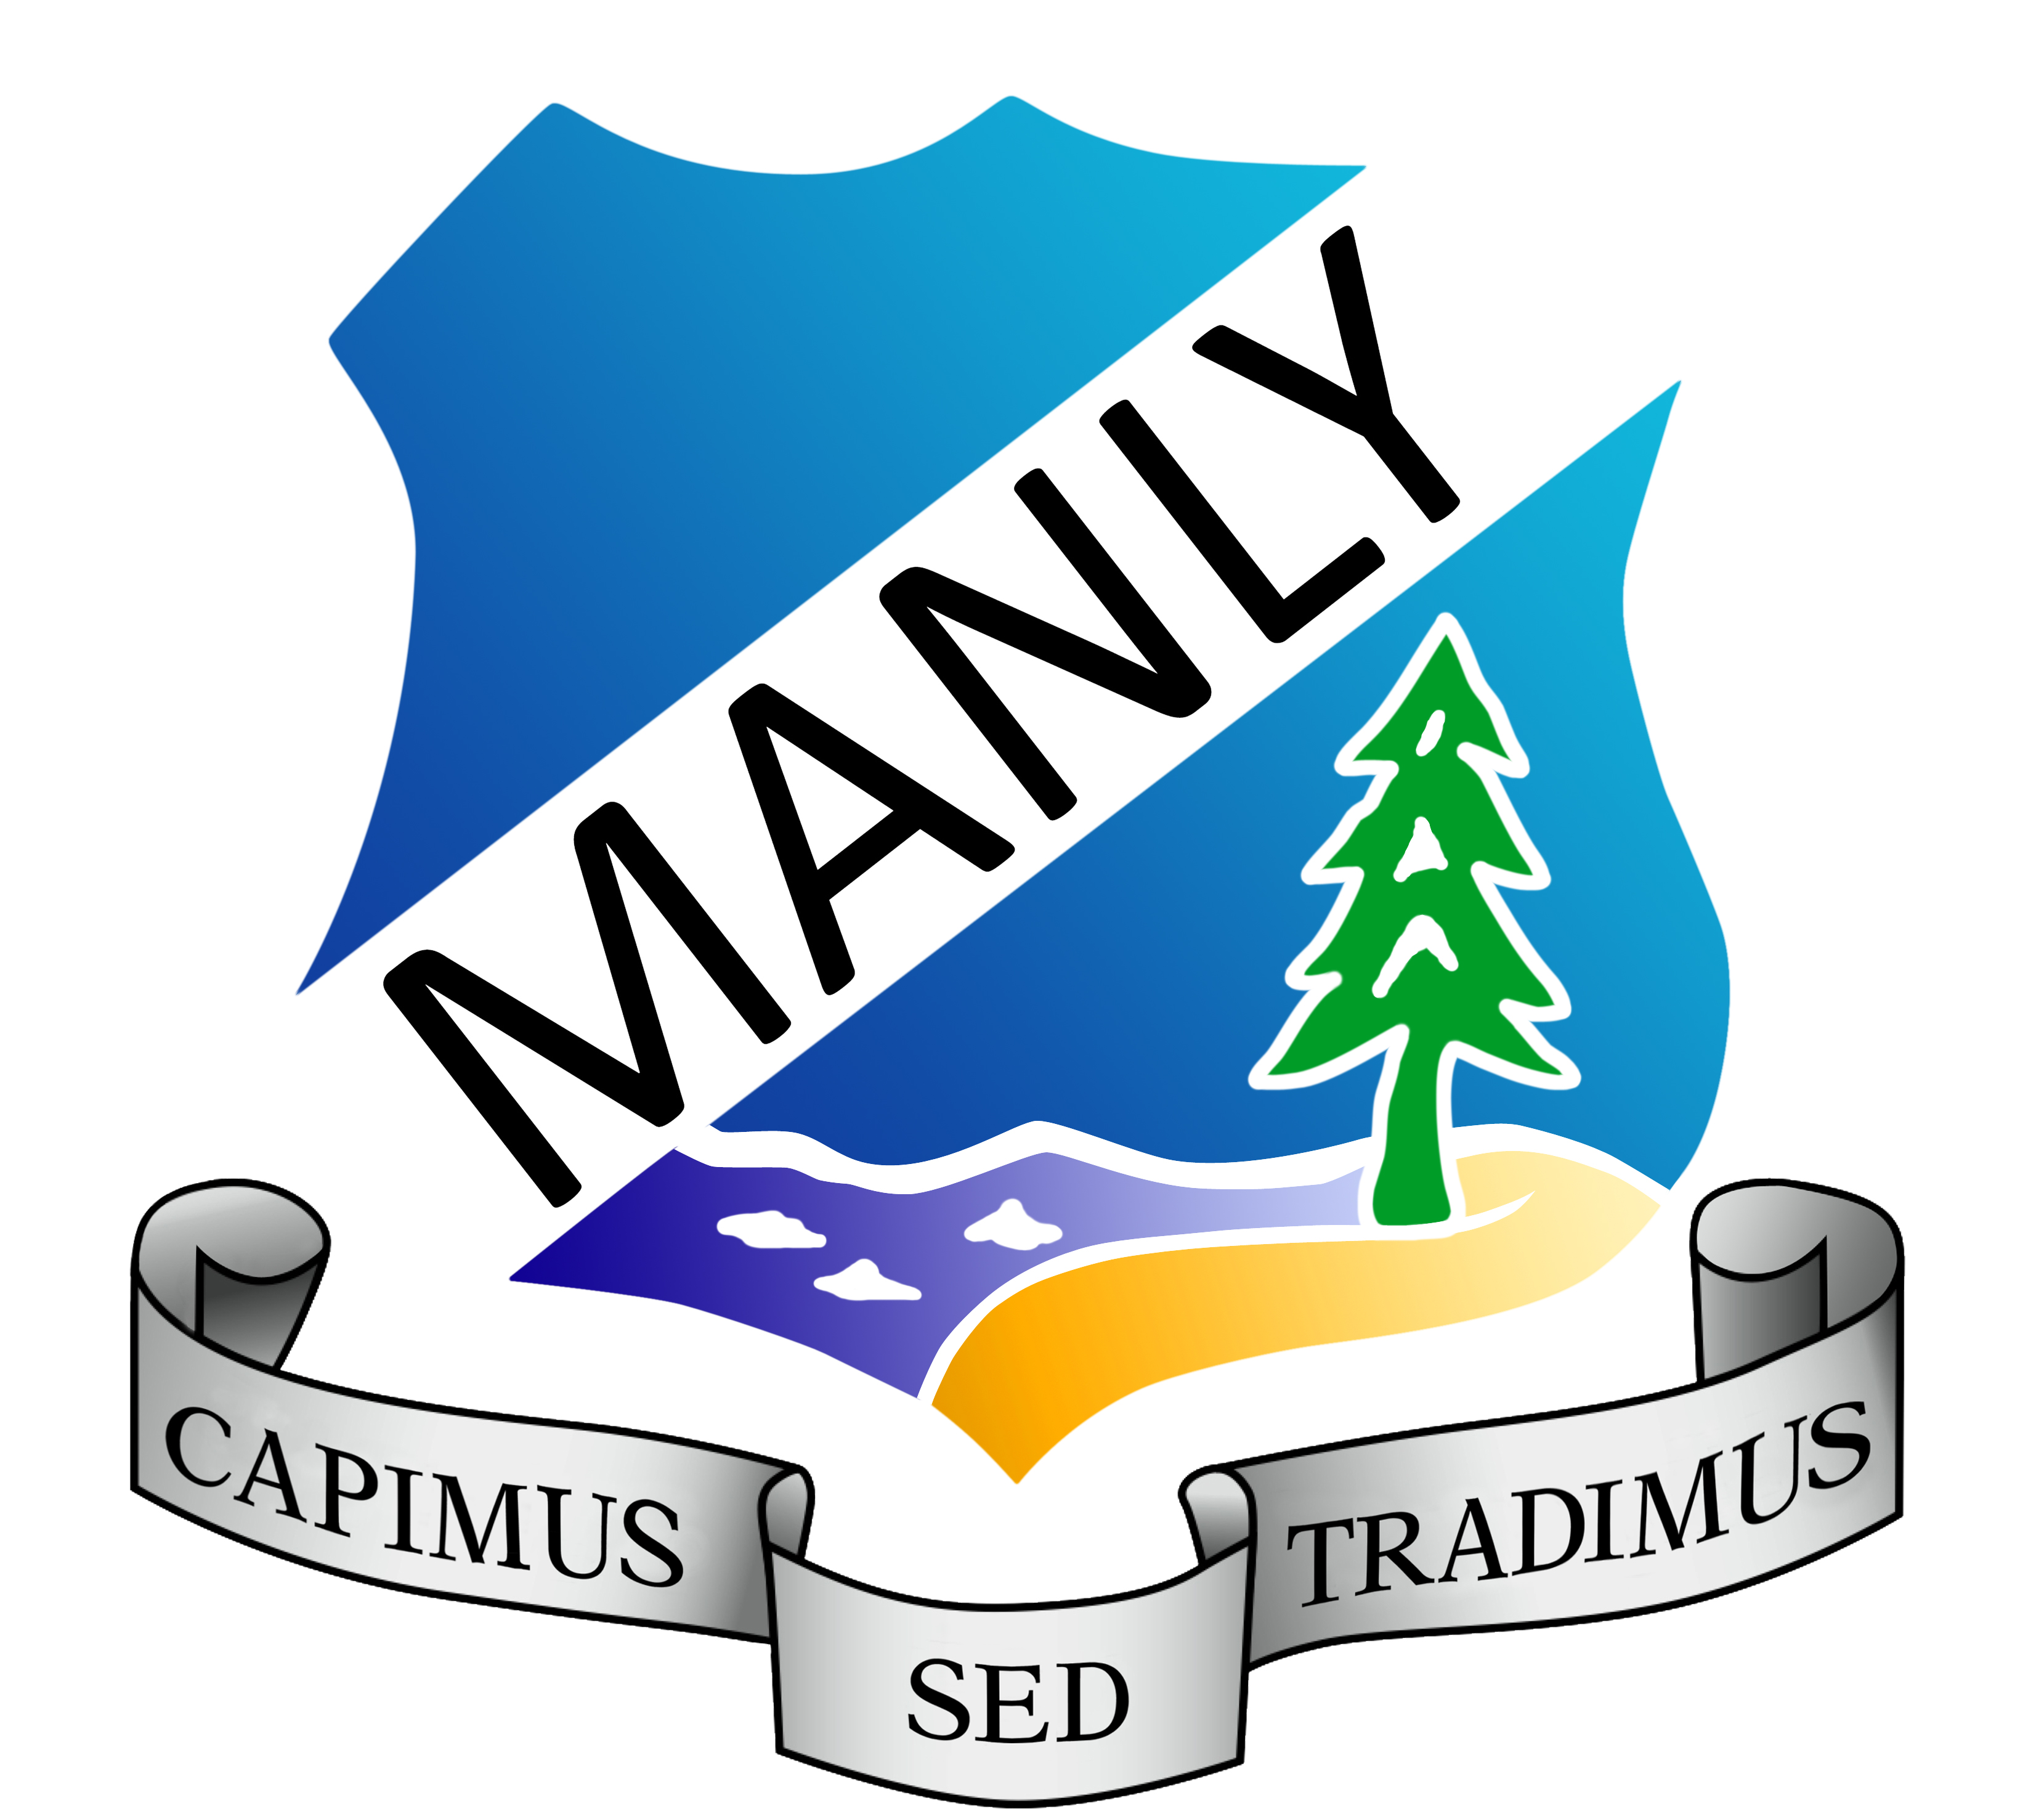 Manly Selective Campus - Wikipedia